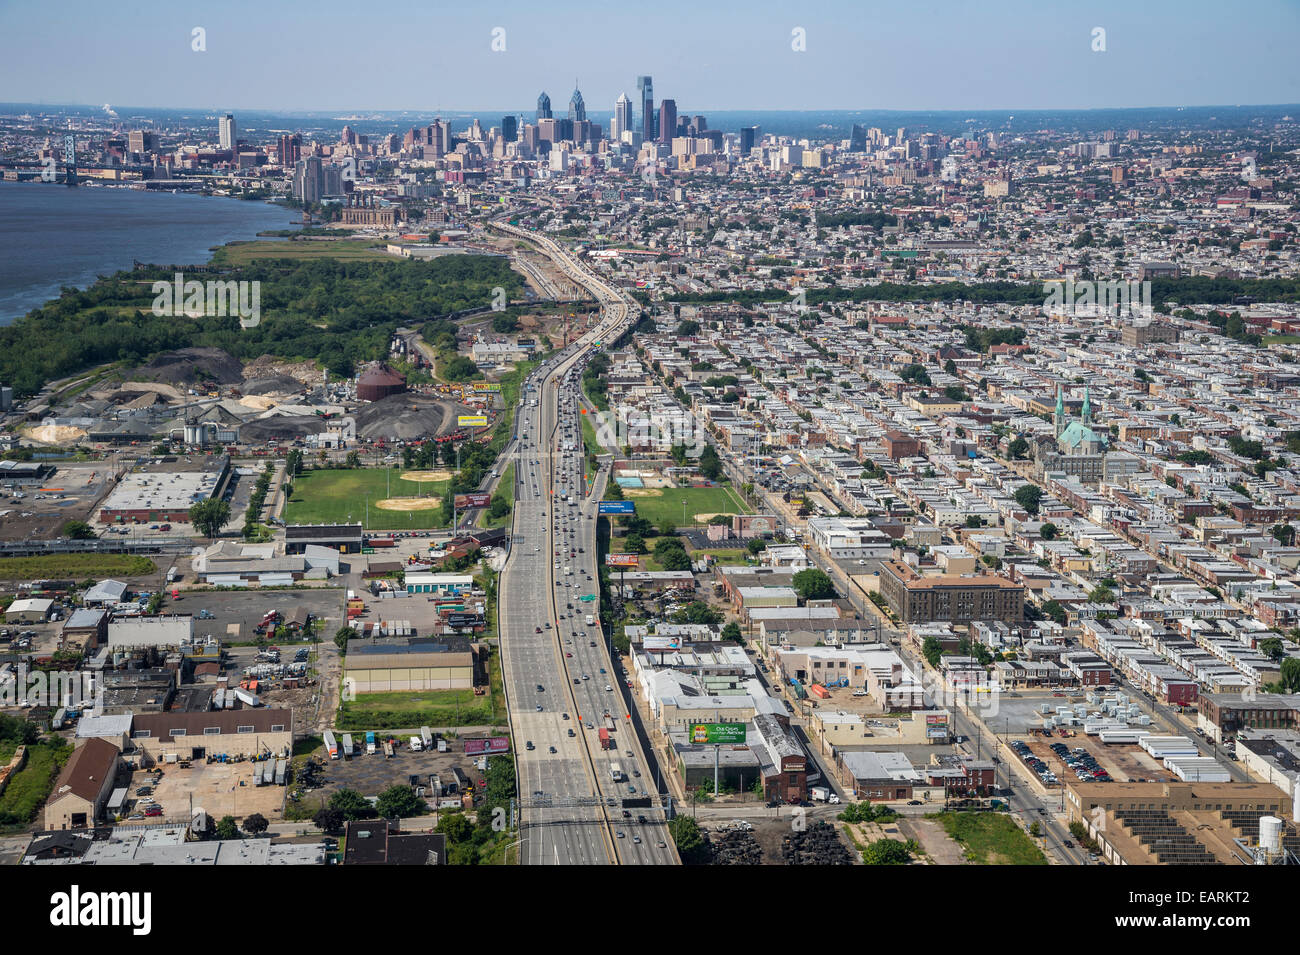 Getting From Jersey City To Jfk